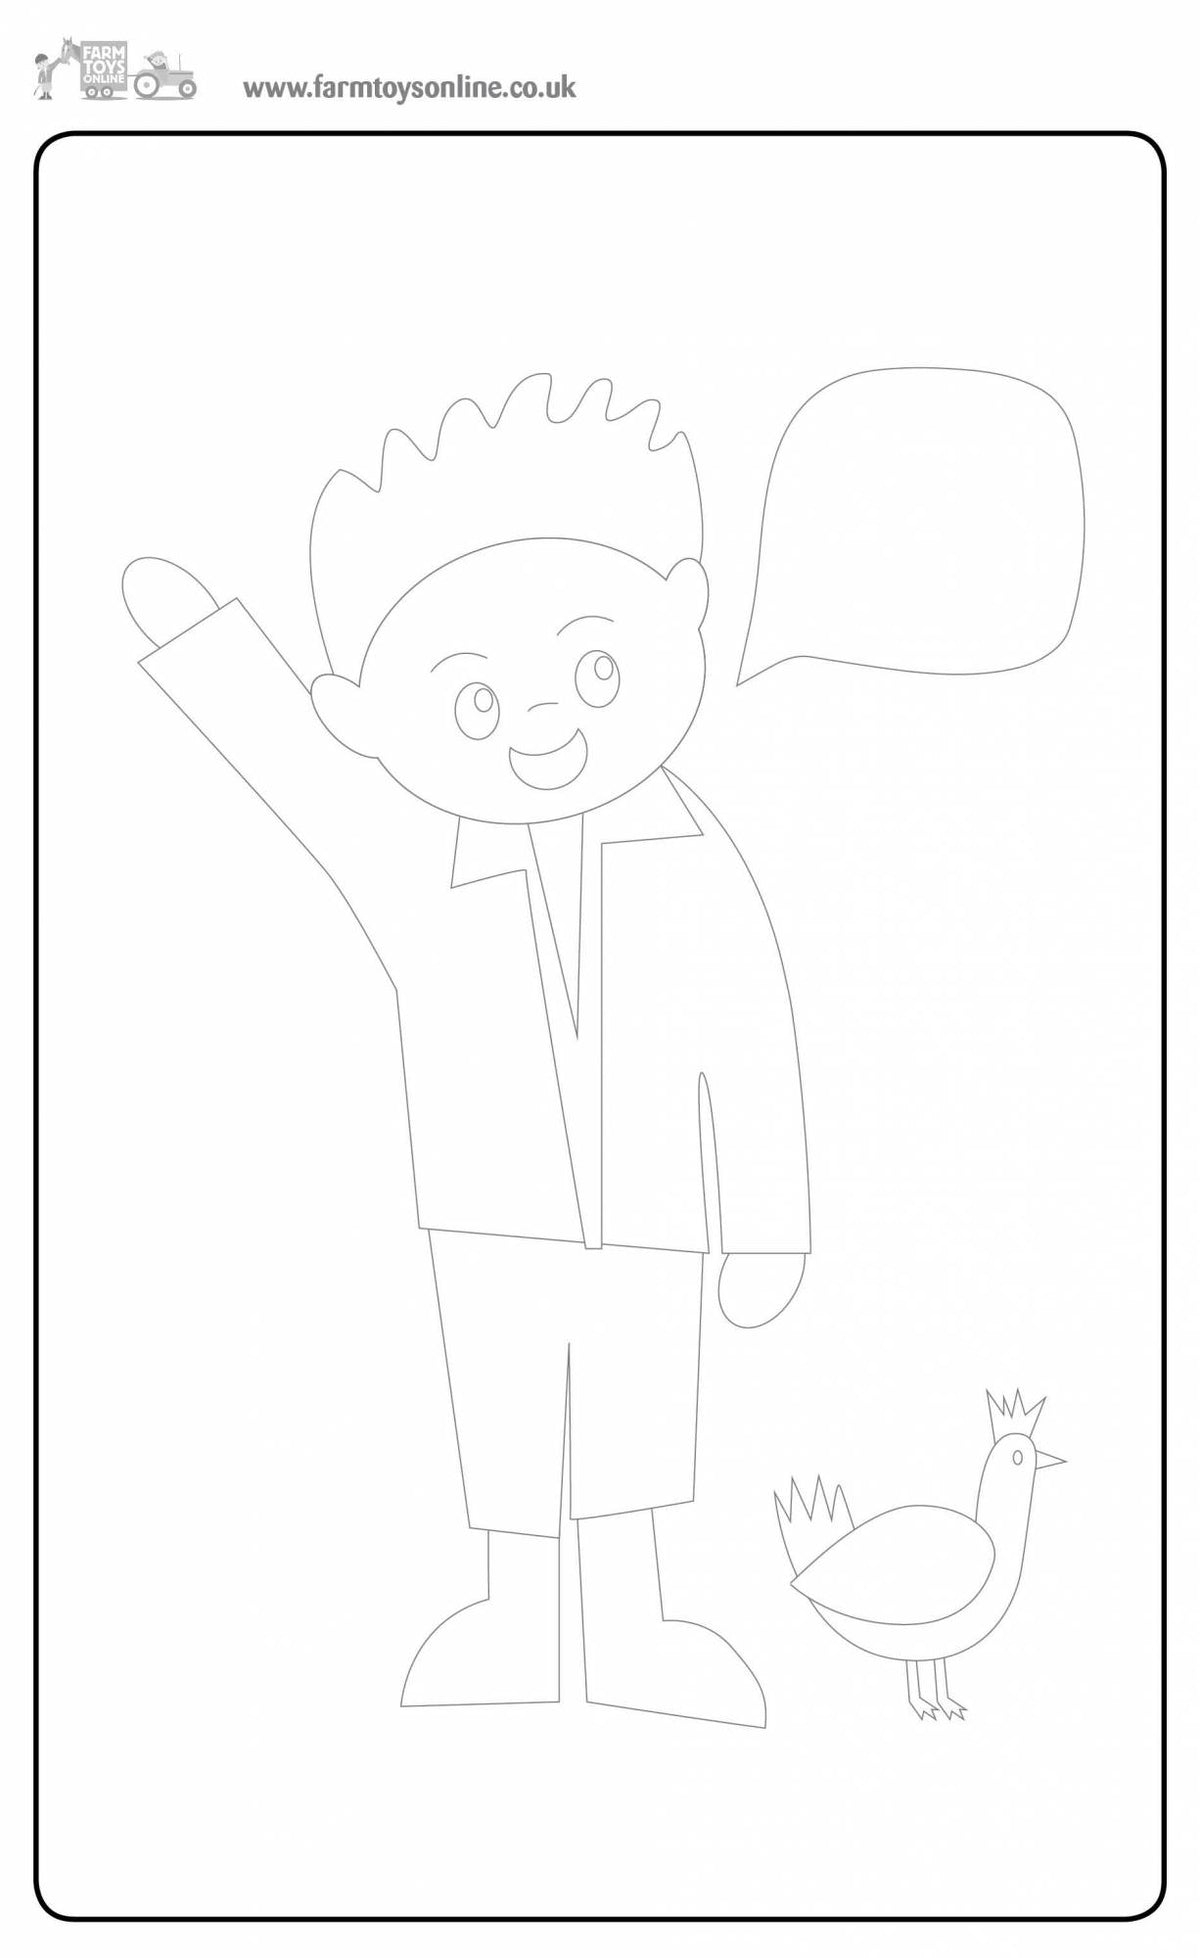 Farmer Freddie's Colouring Sheet 4